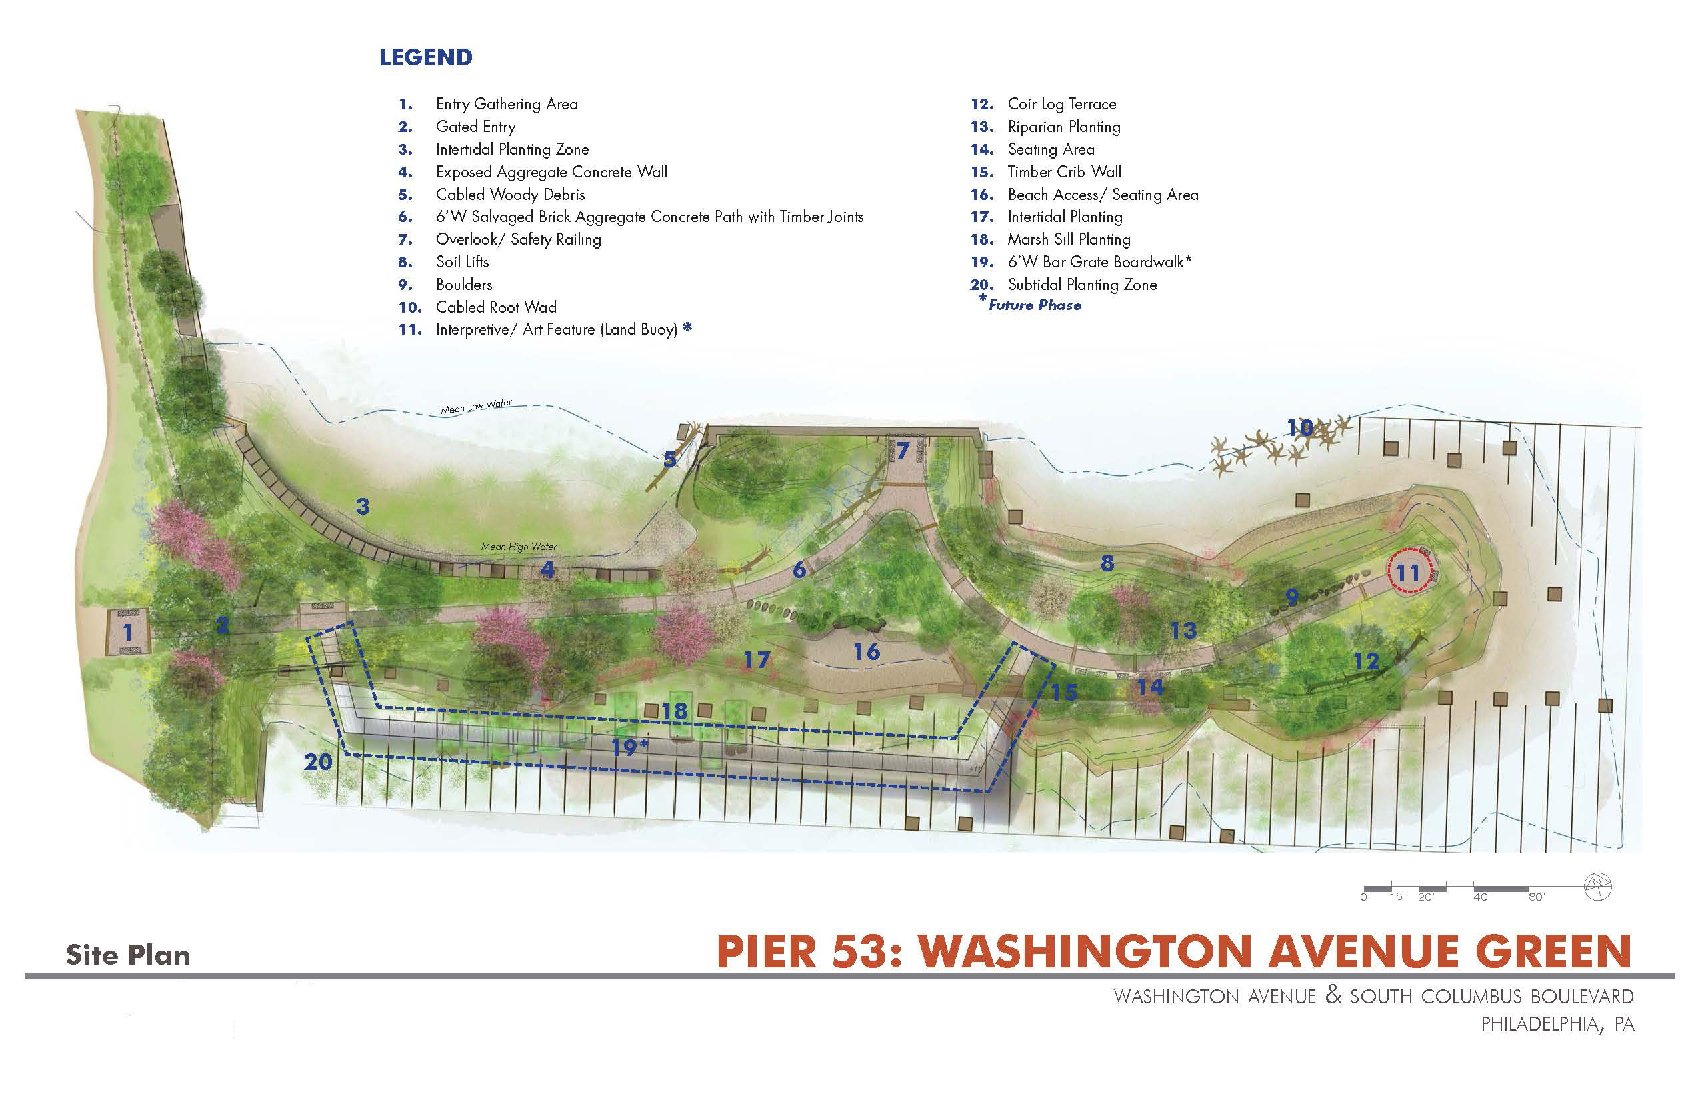 Pier 53 Site Map by Applied Ecological Services